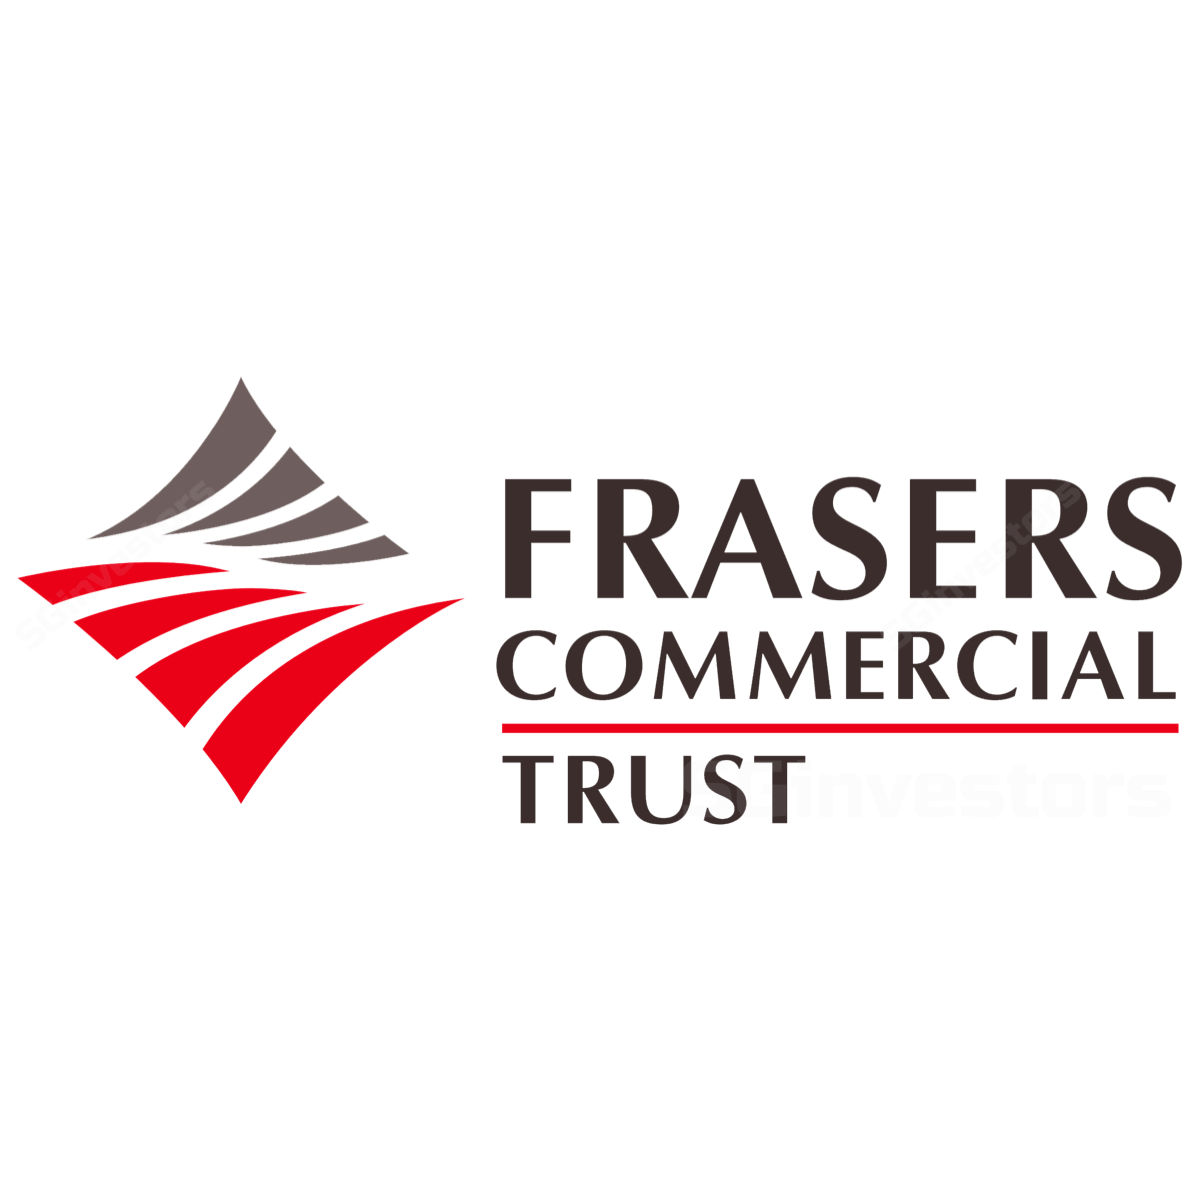 Frasers Commercial Trust - DBS Vickers 2017-05-30: Glass Half Full